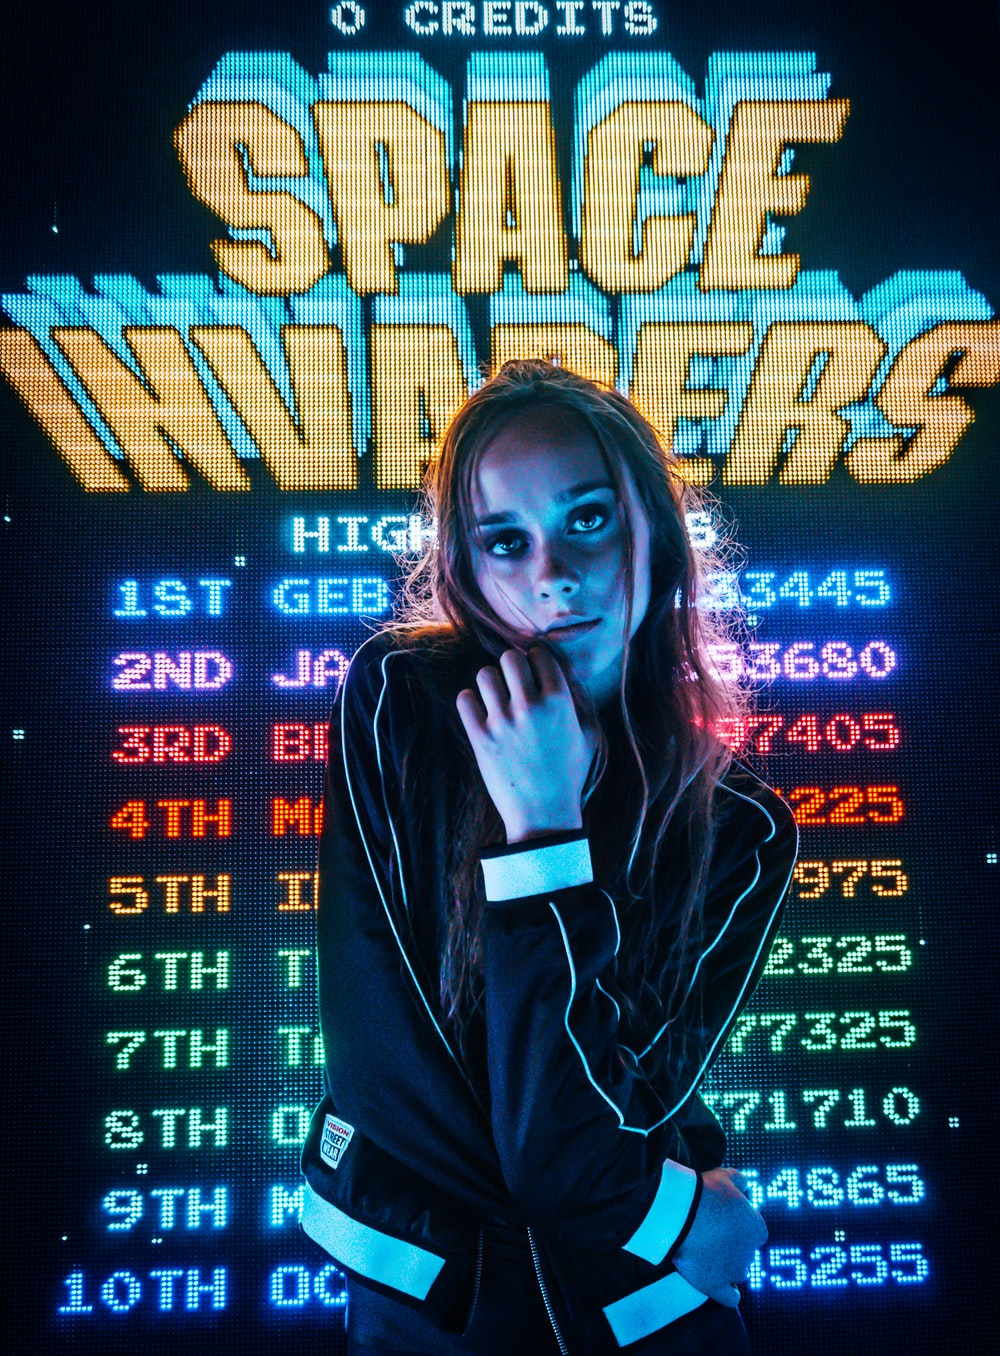 woman posing for photo in front of Space Invaders scoreboard